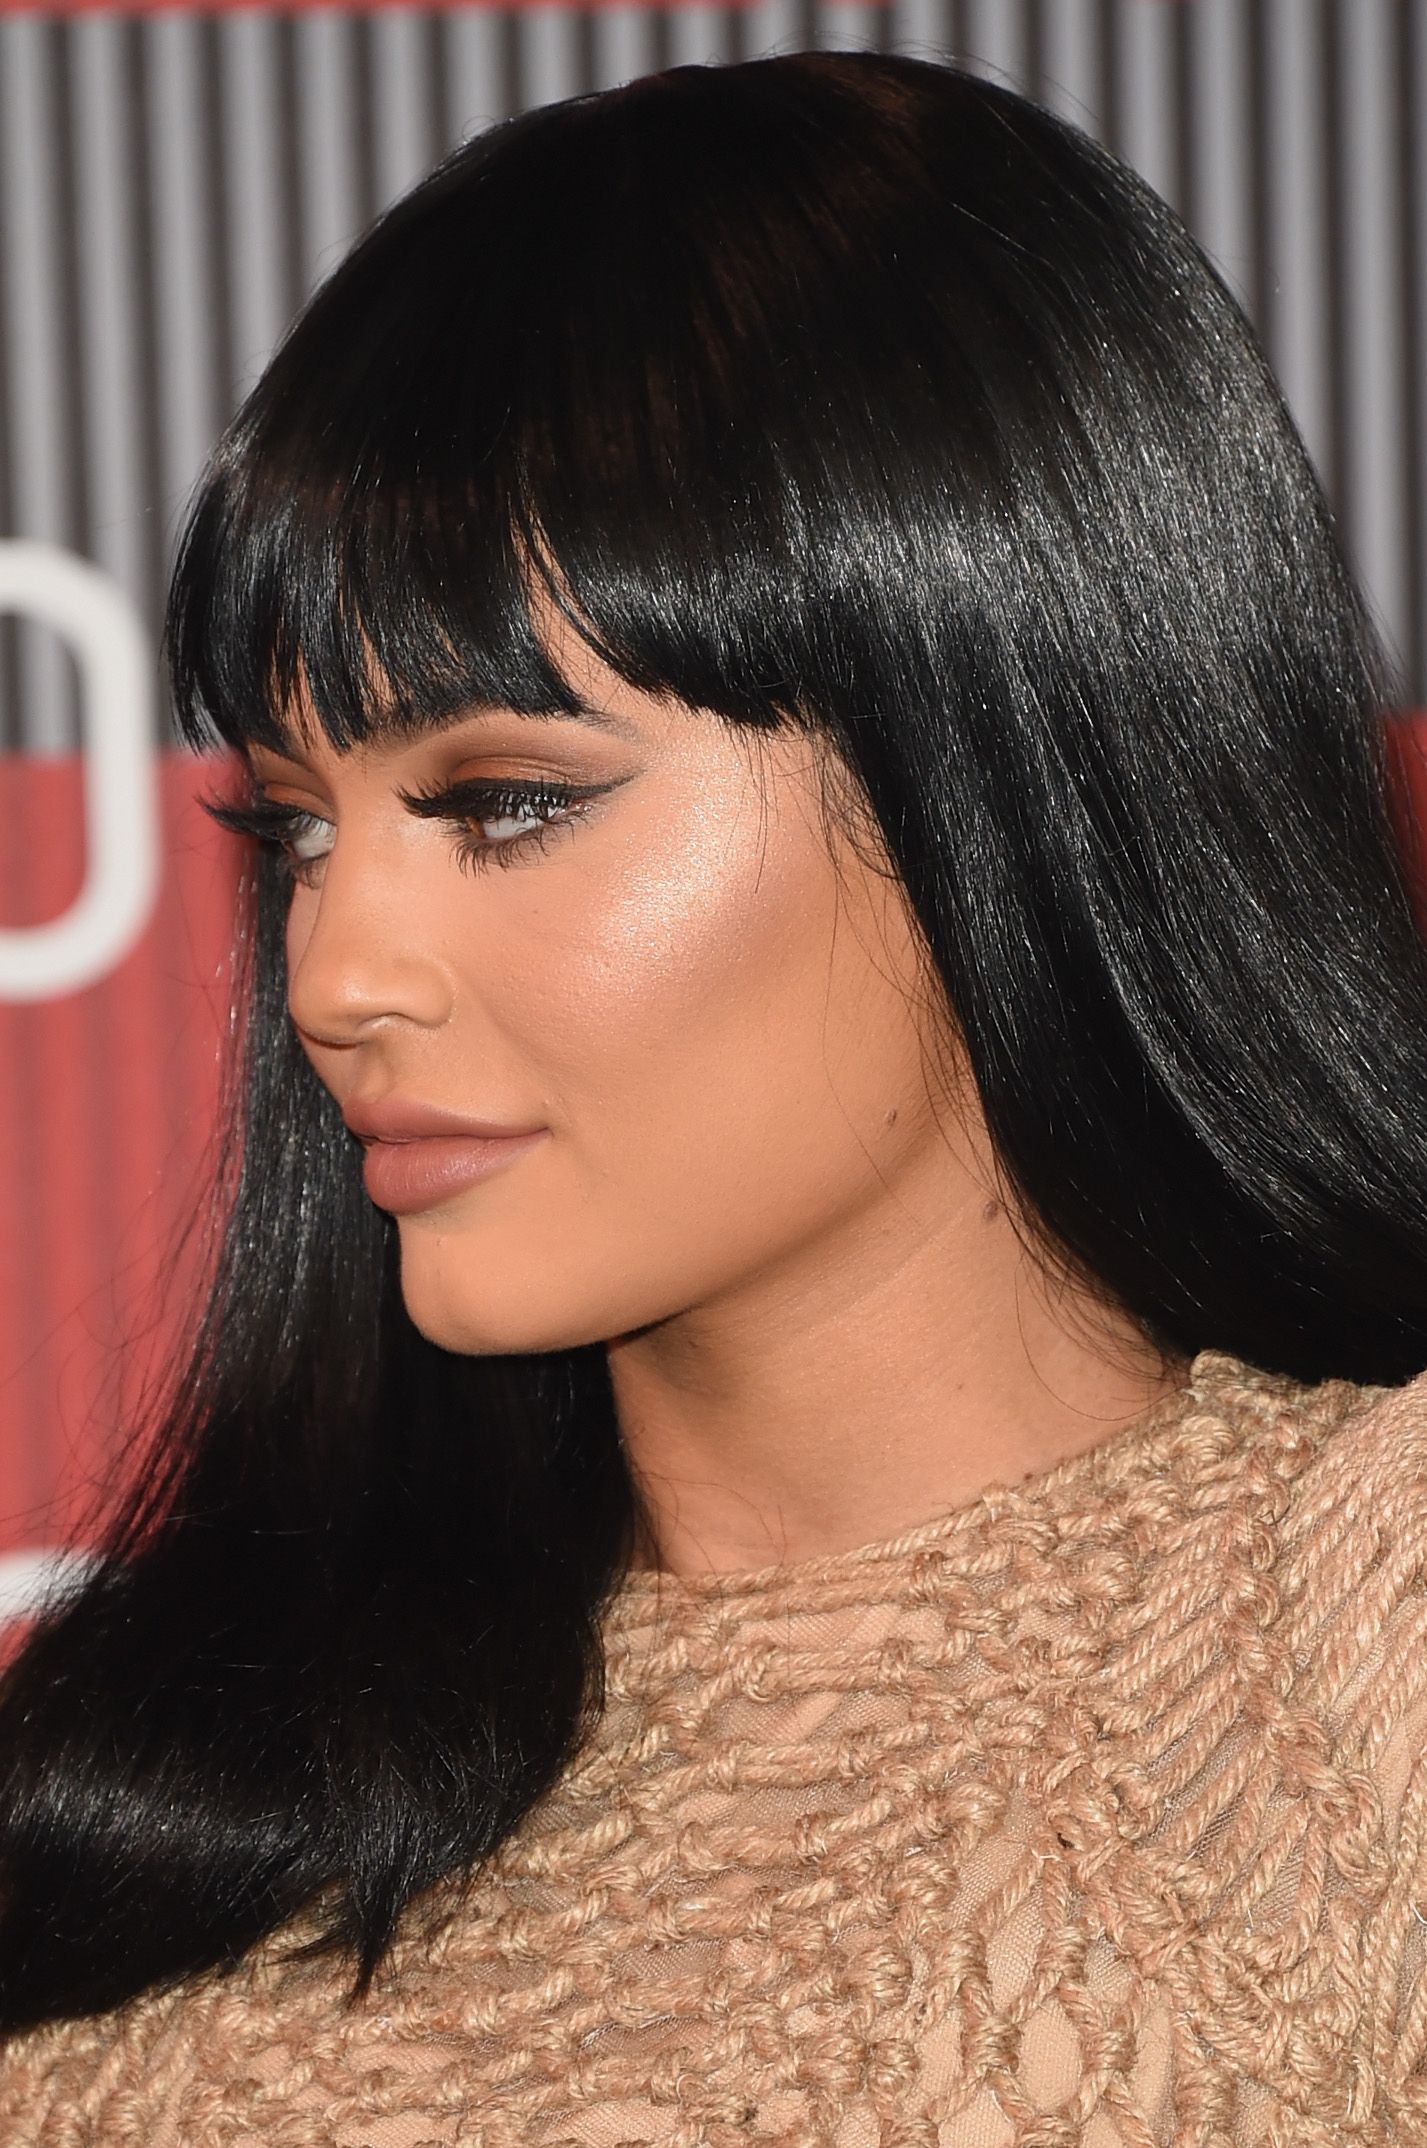 Kylie Jenner Wears Lilly Lashes To Get That Bold Lashed Look She